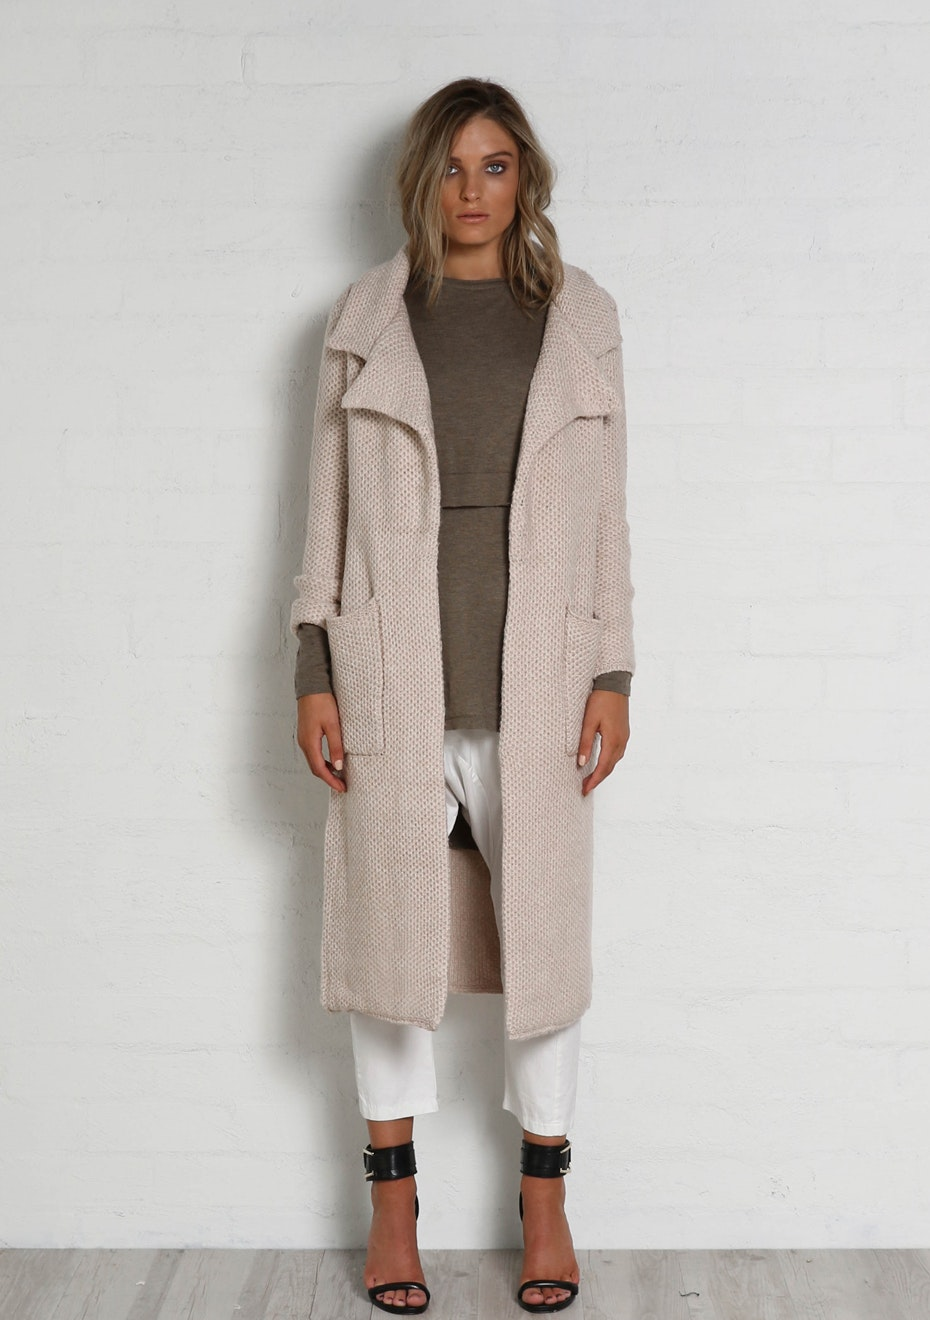 Madison - MAYA COAT - SCALLOP